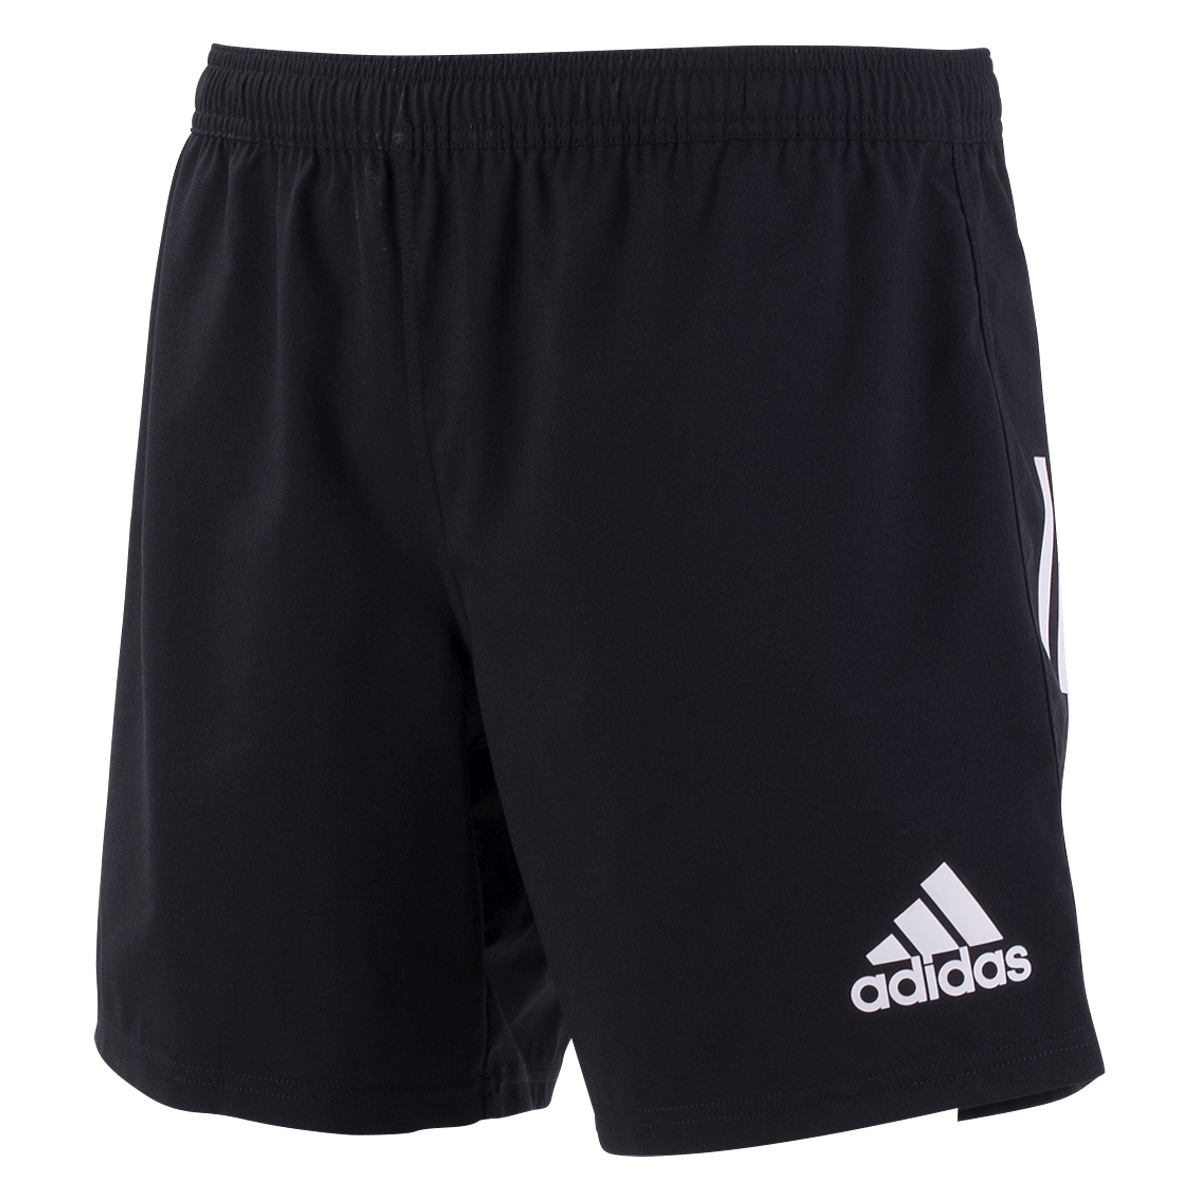 adidas 19 Black/White 3 Stripe Shorts